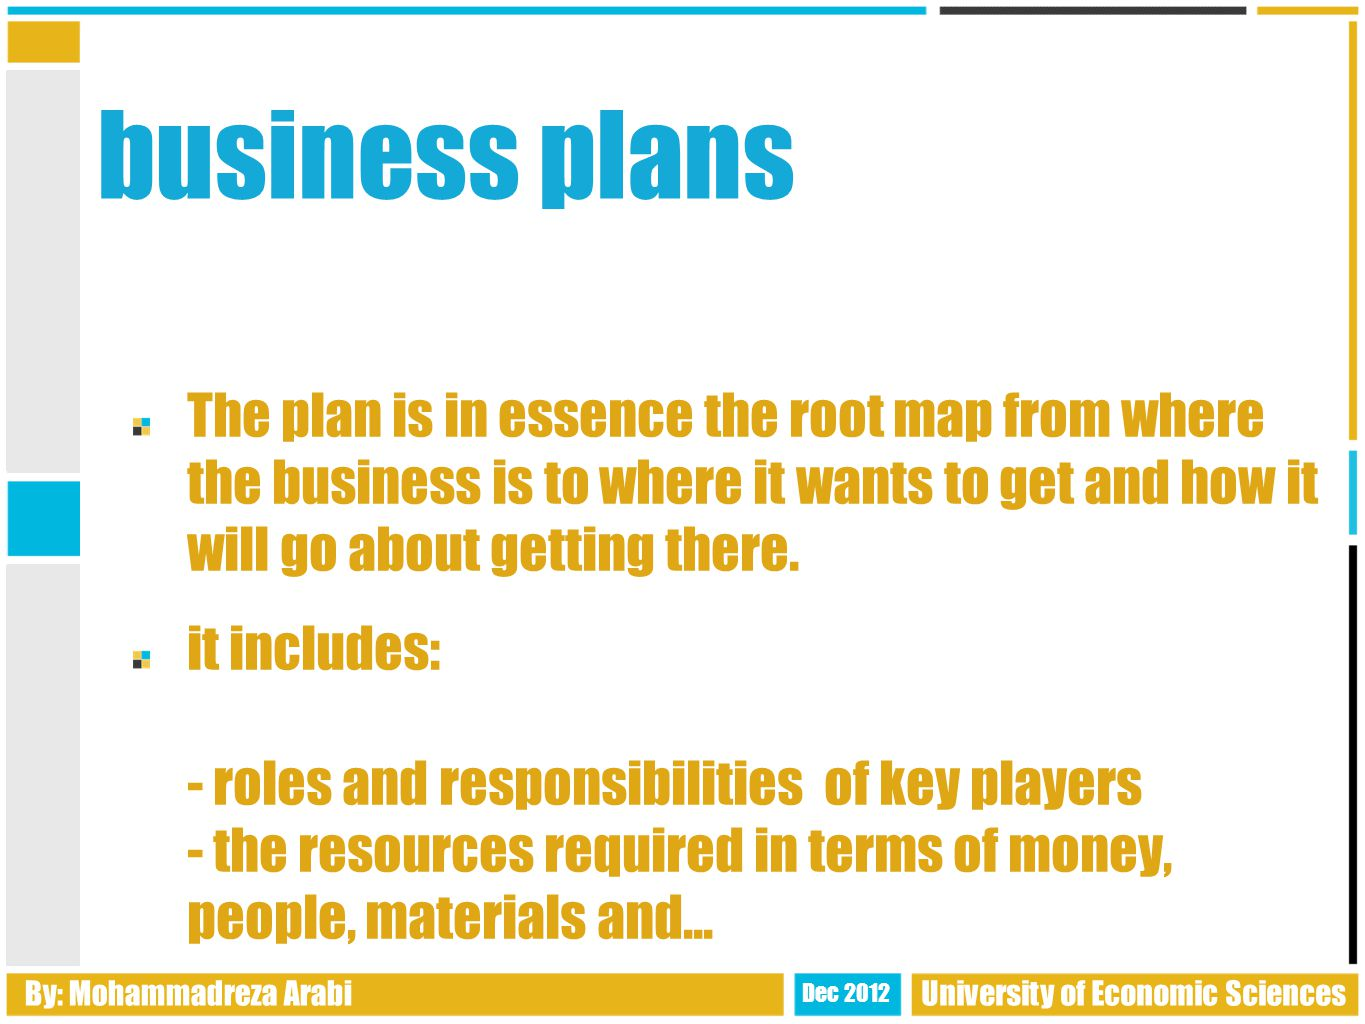 business plans The plan is in essence the root map from where the business is to where it wants to get and how it will go about getting there.